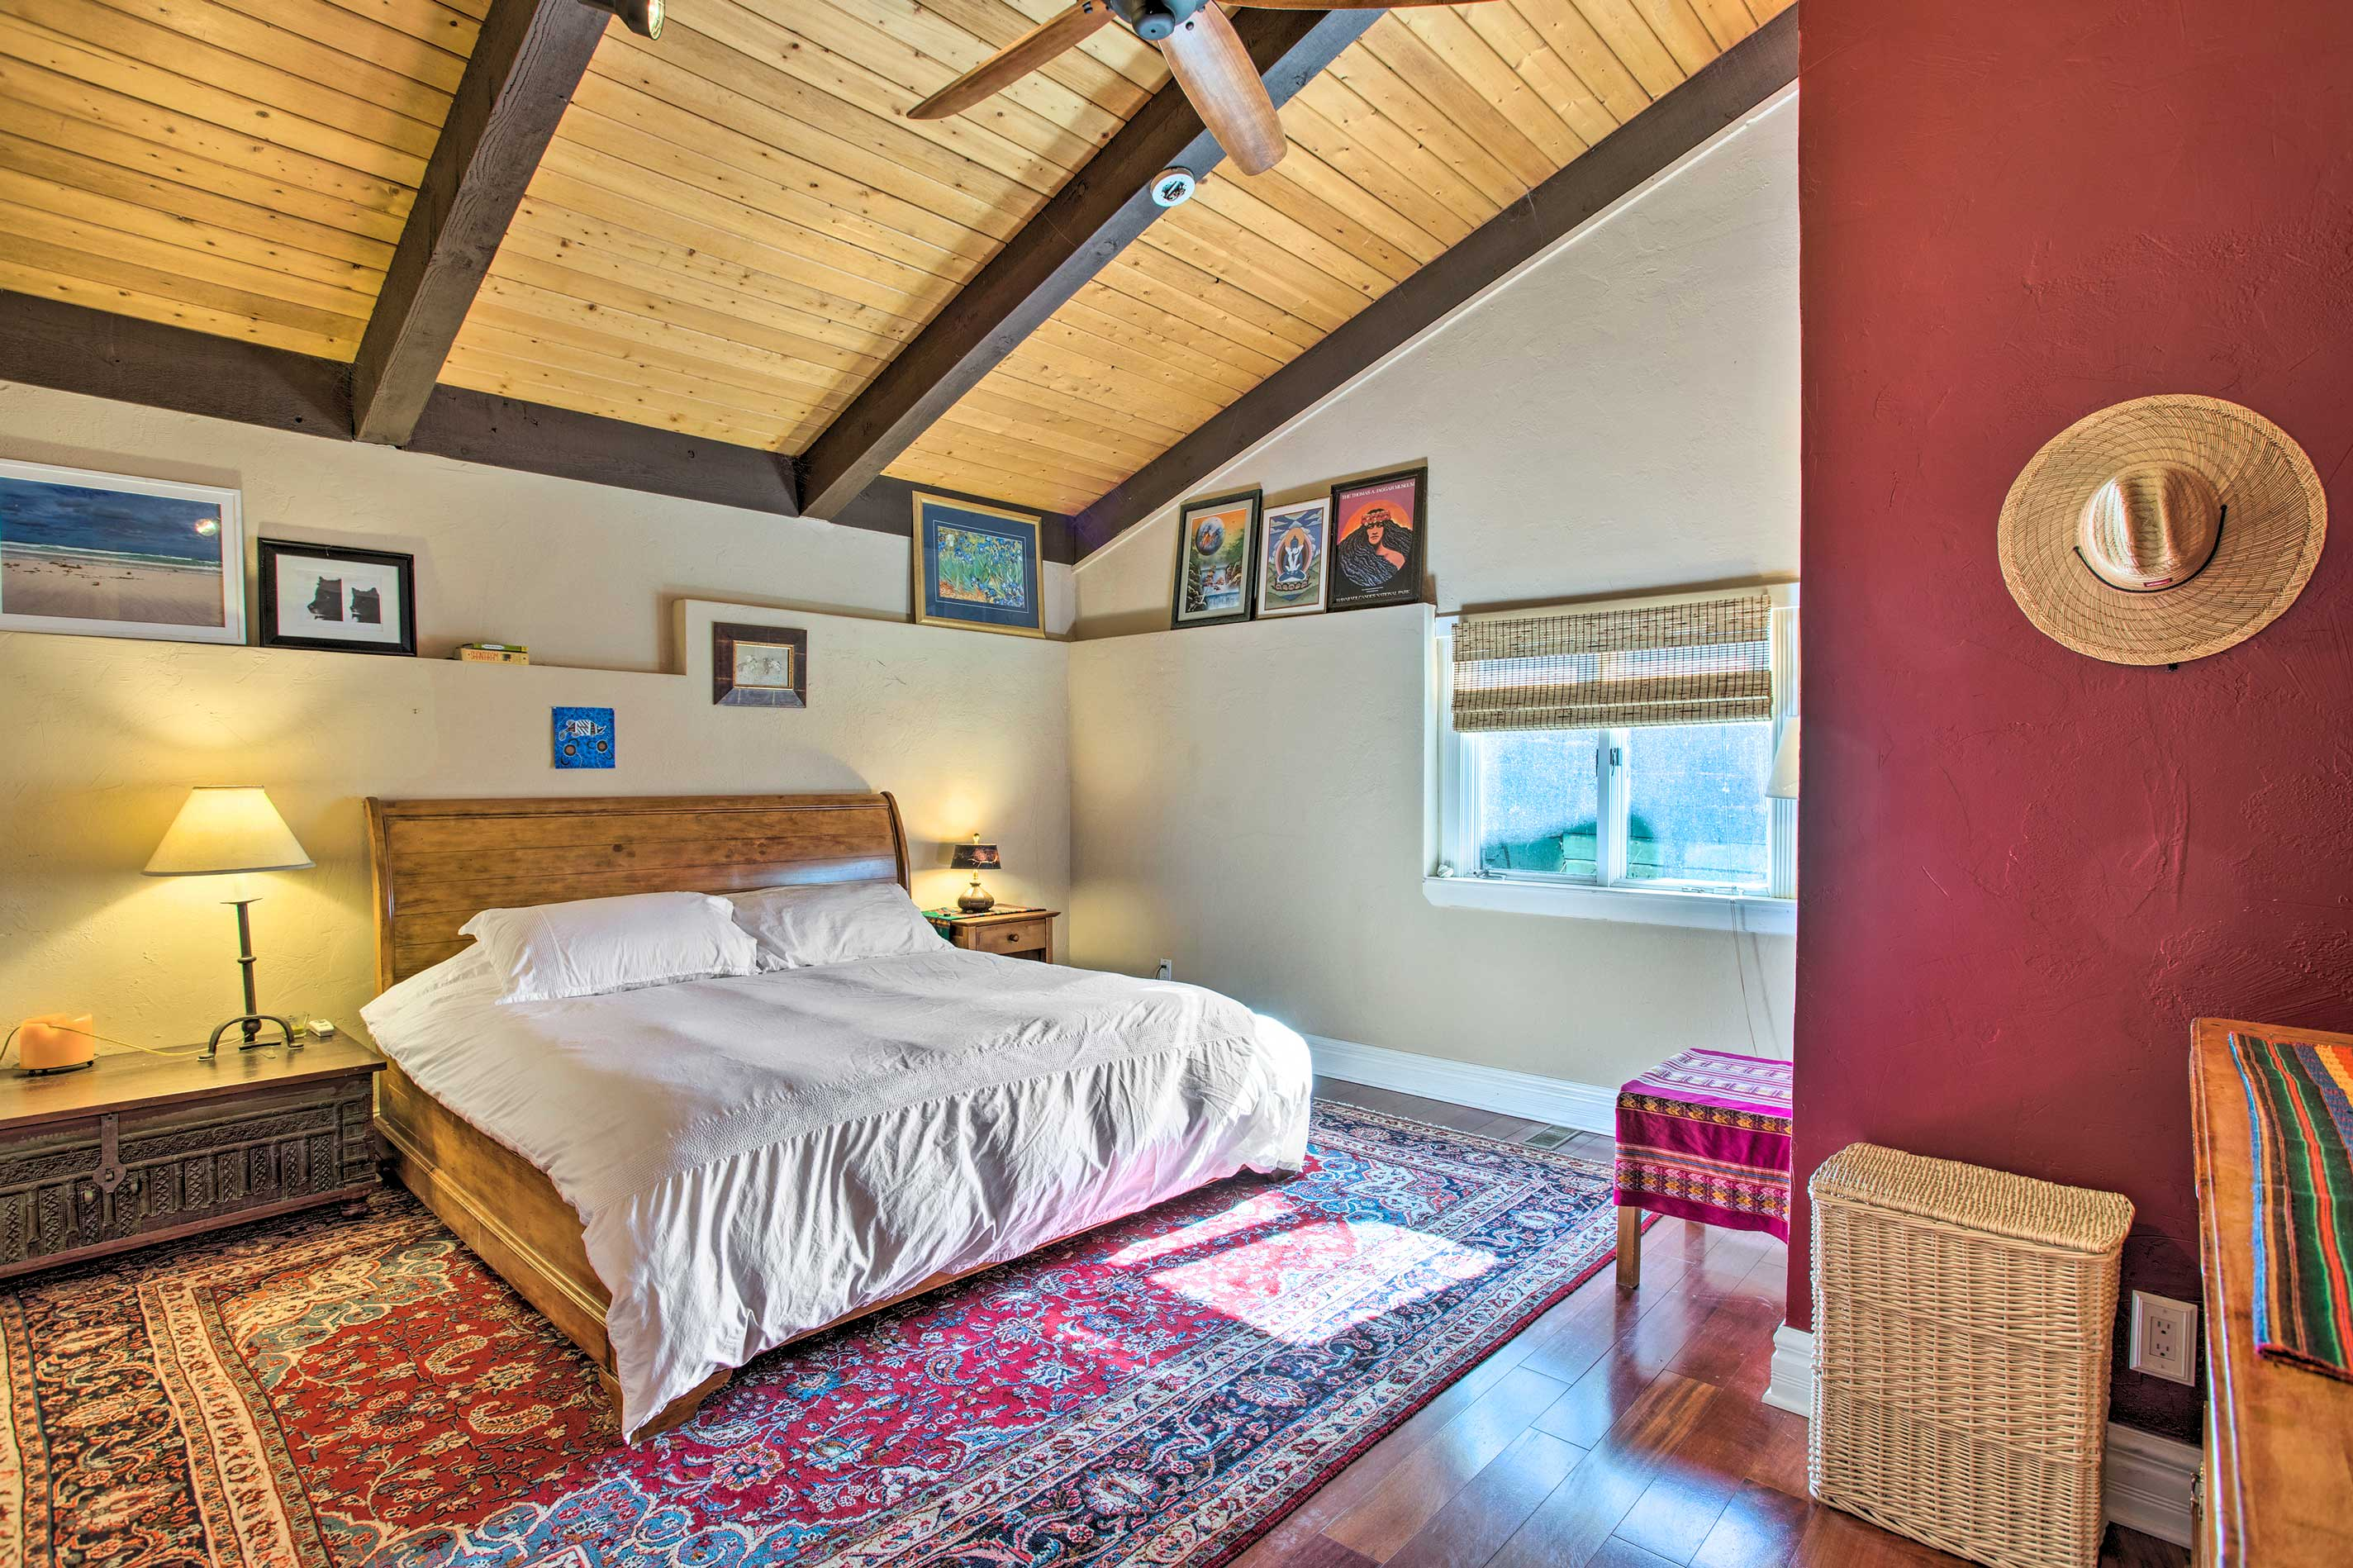 Claim this California king bed as your own.